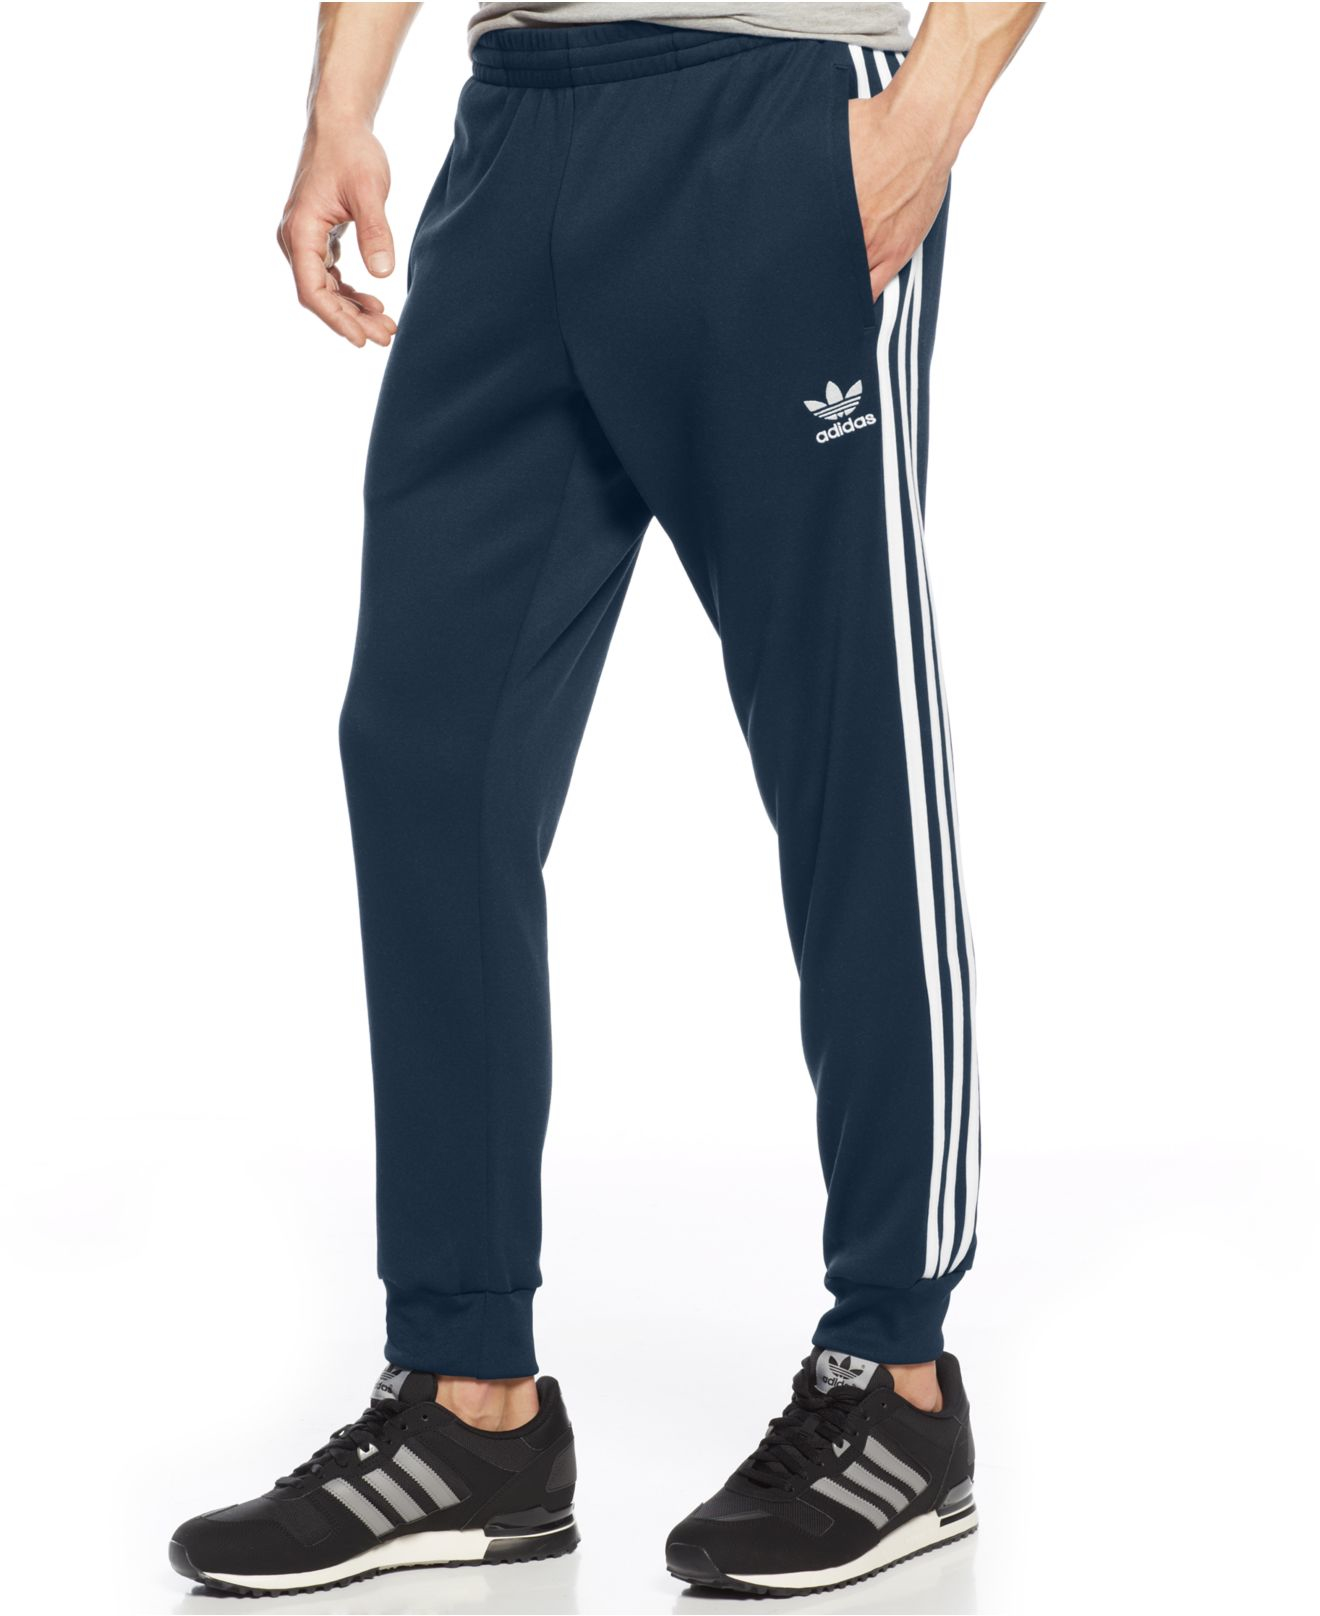 better price sold worldwide big clearance sale Adidas Blue Originals Striped Joggers for men